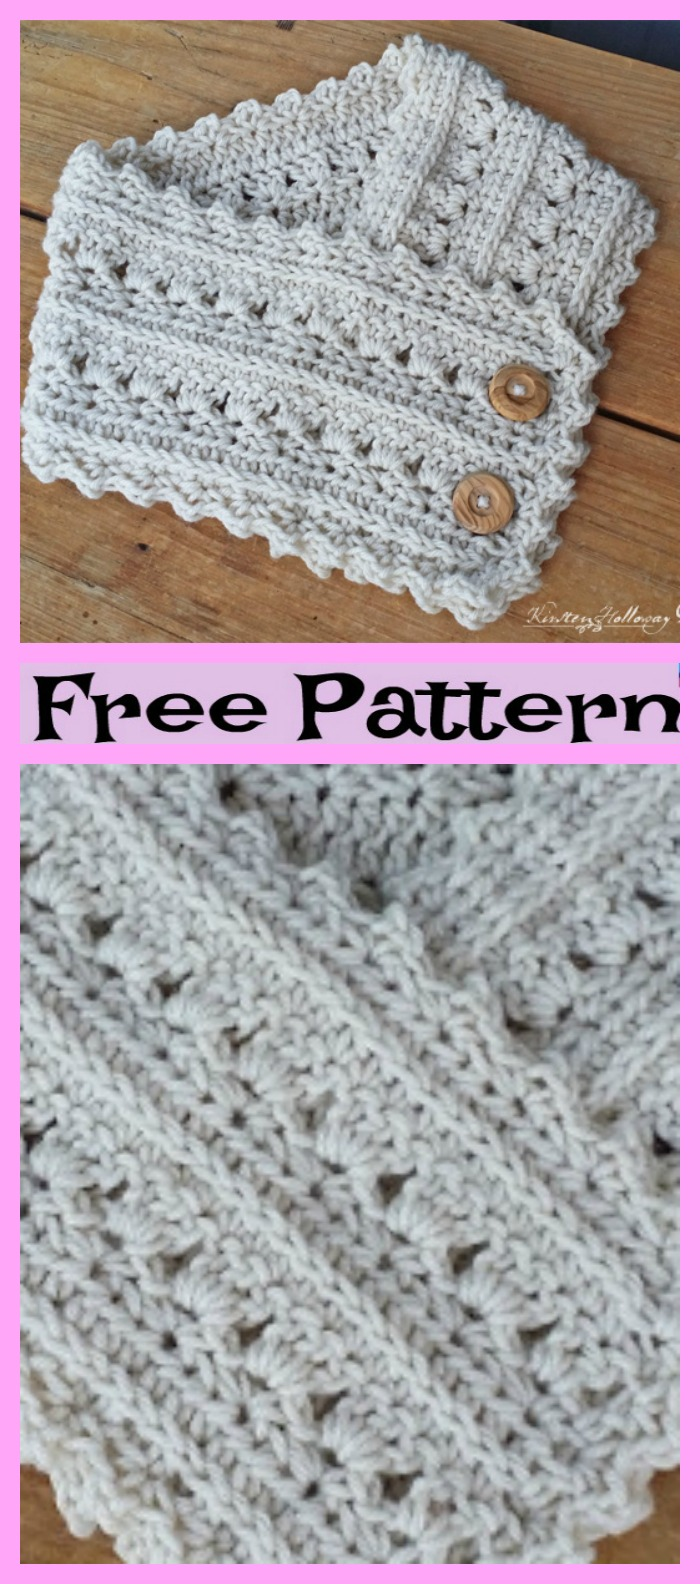 diy4ever-Crochet Secret Garden Neck Warmers - Free Pattern